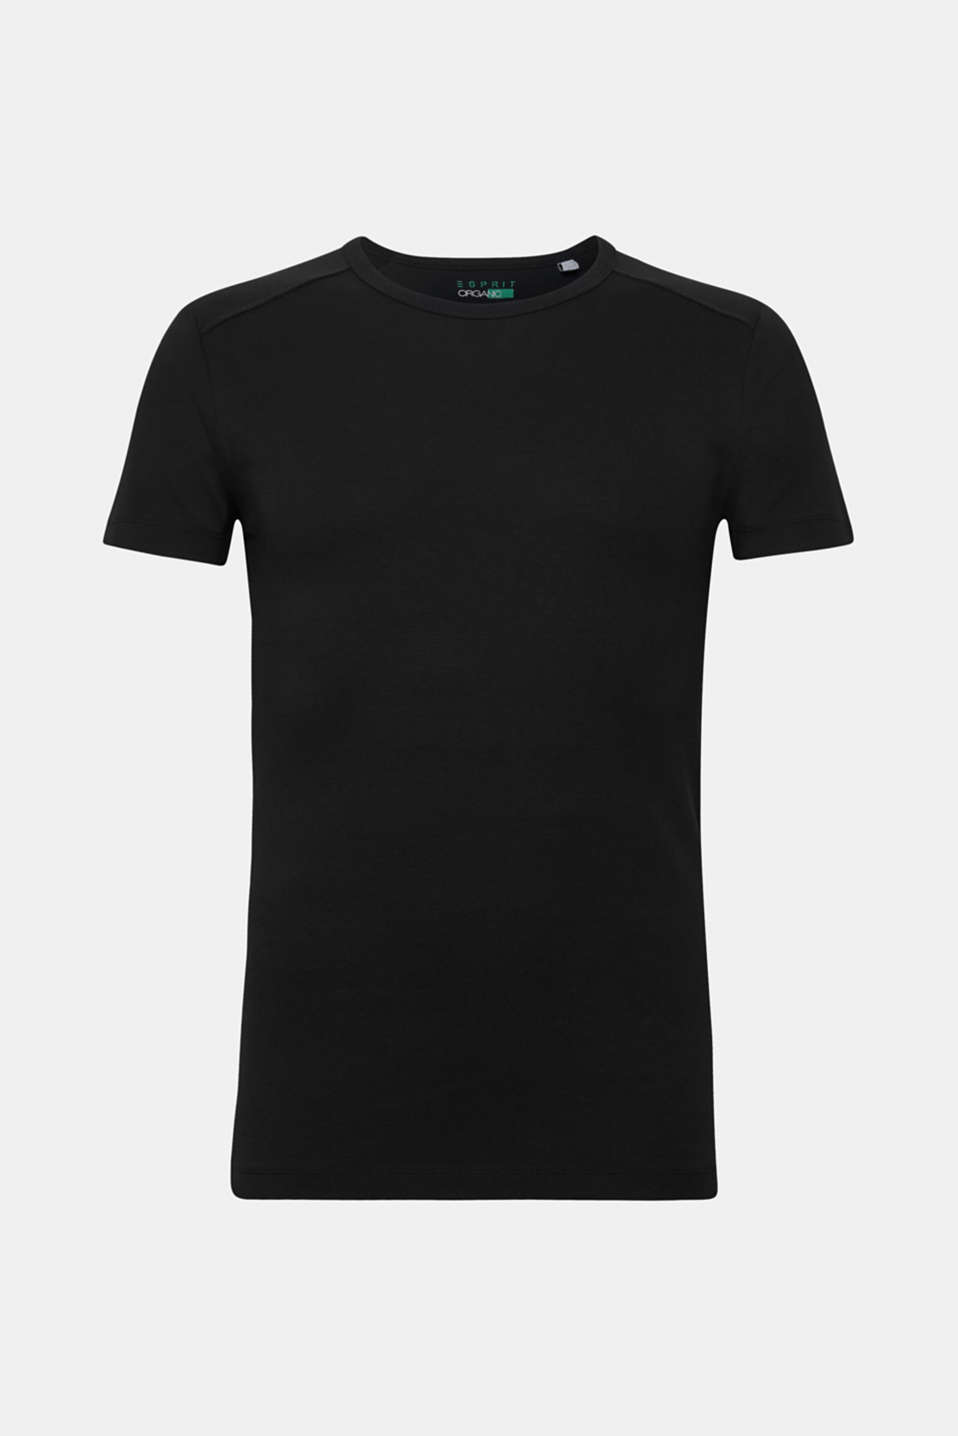 A brilliant basic begging for wardrobe space: 100% cotton T-shirt.